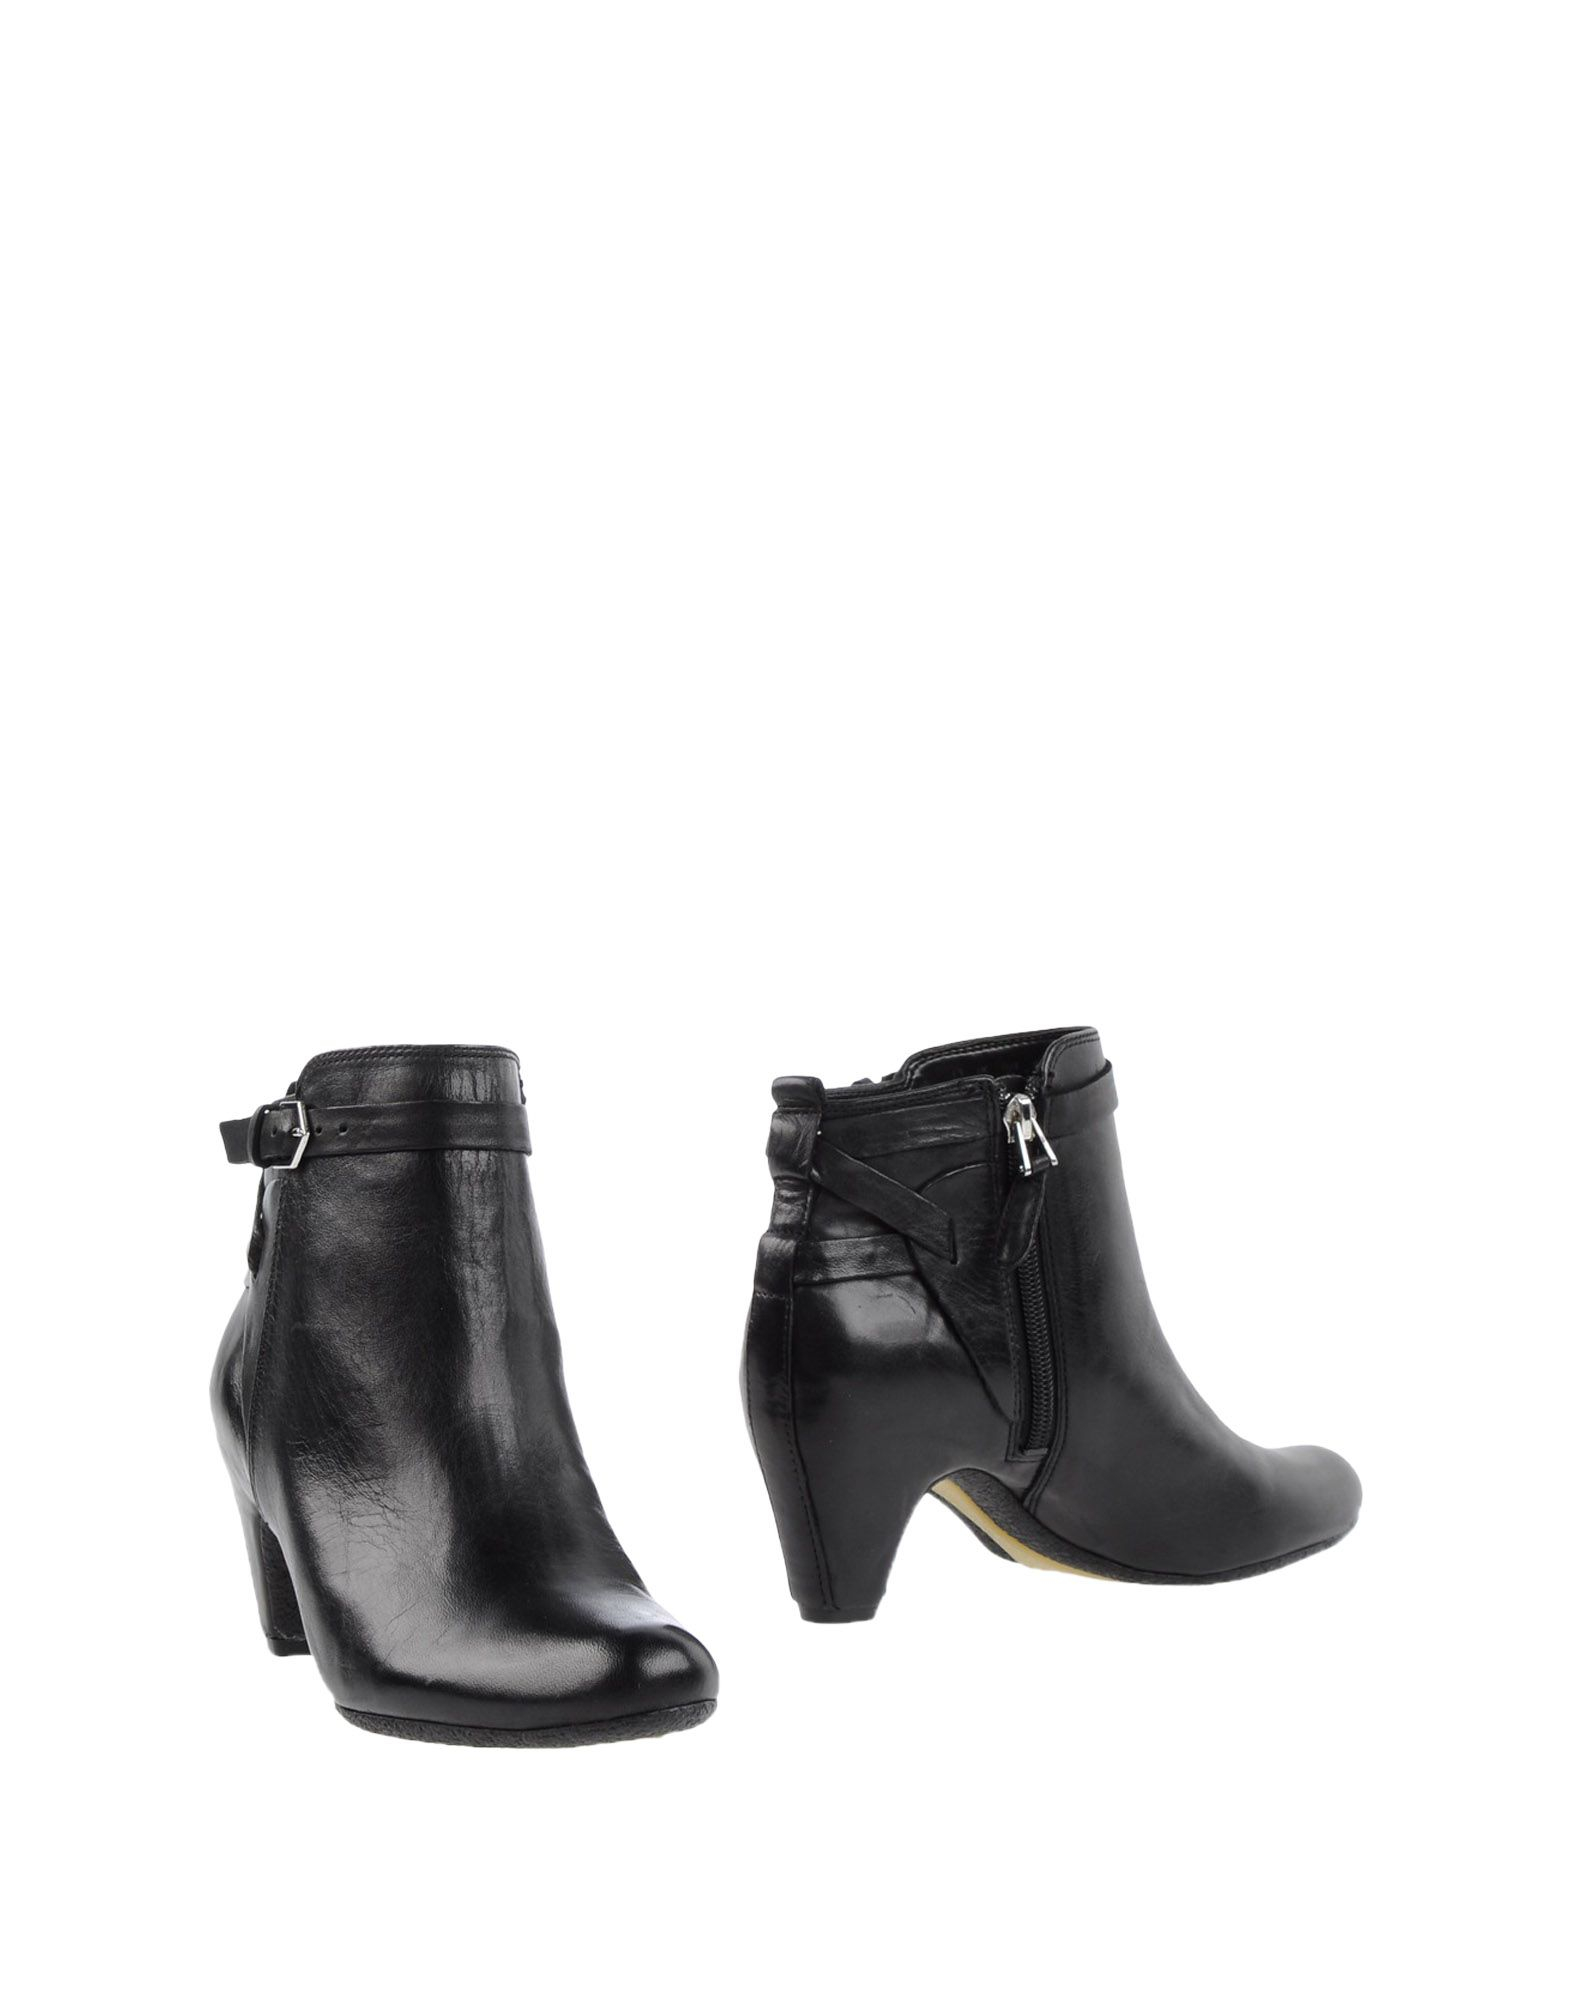 d4866217d29925 Lyst - Sam Edelman Ankle Boots in Black